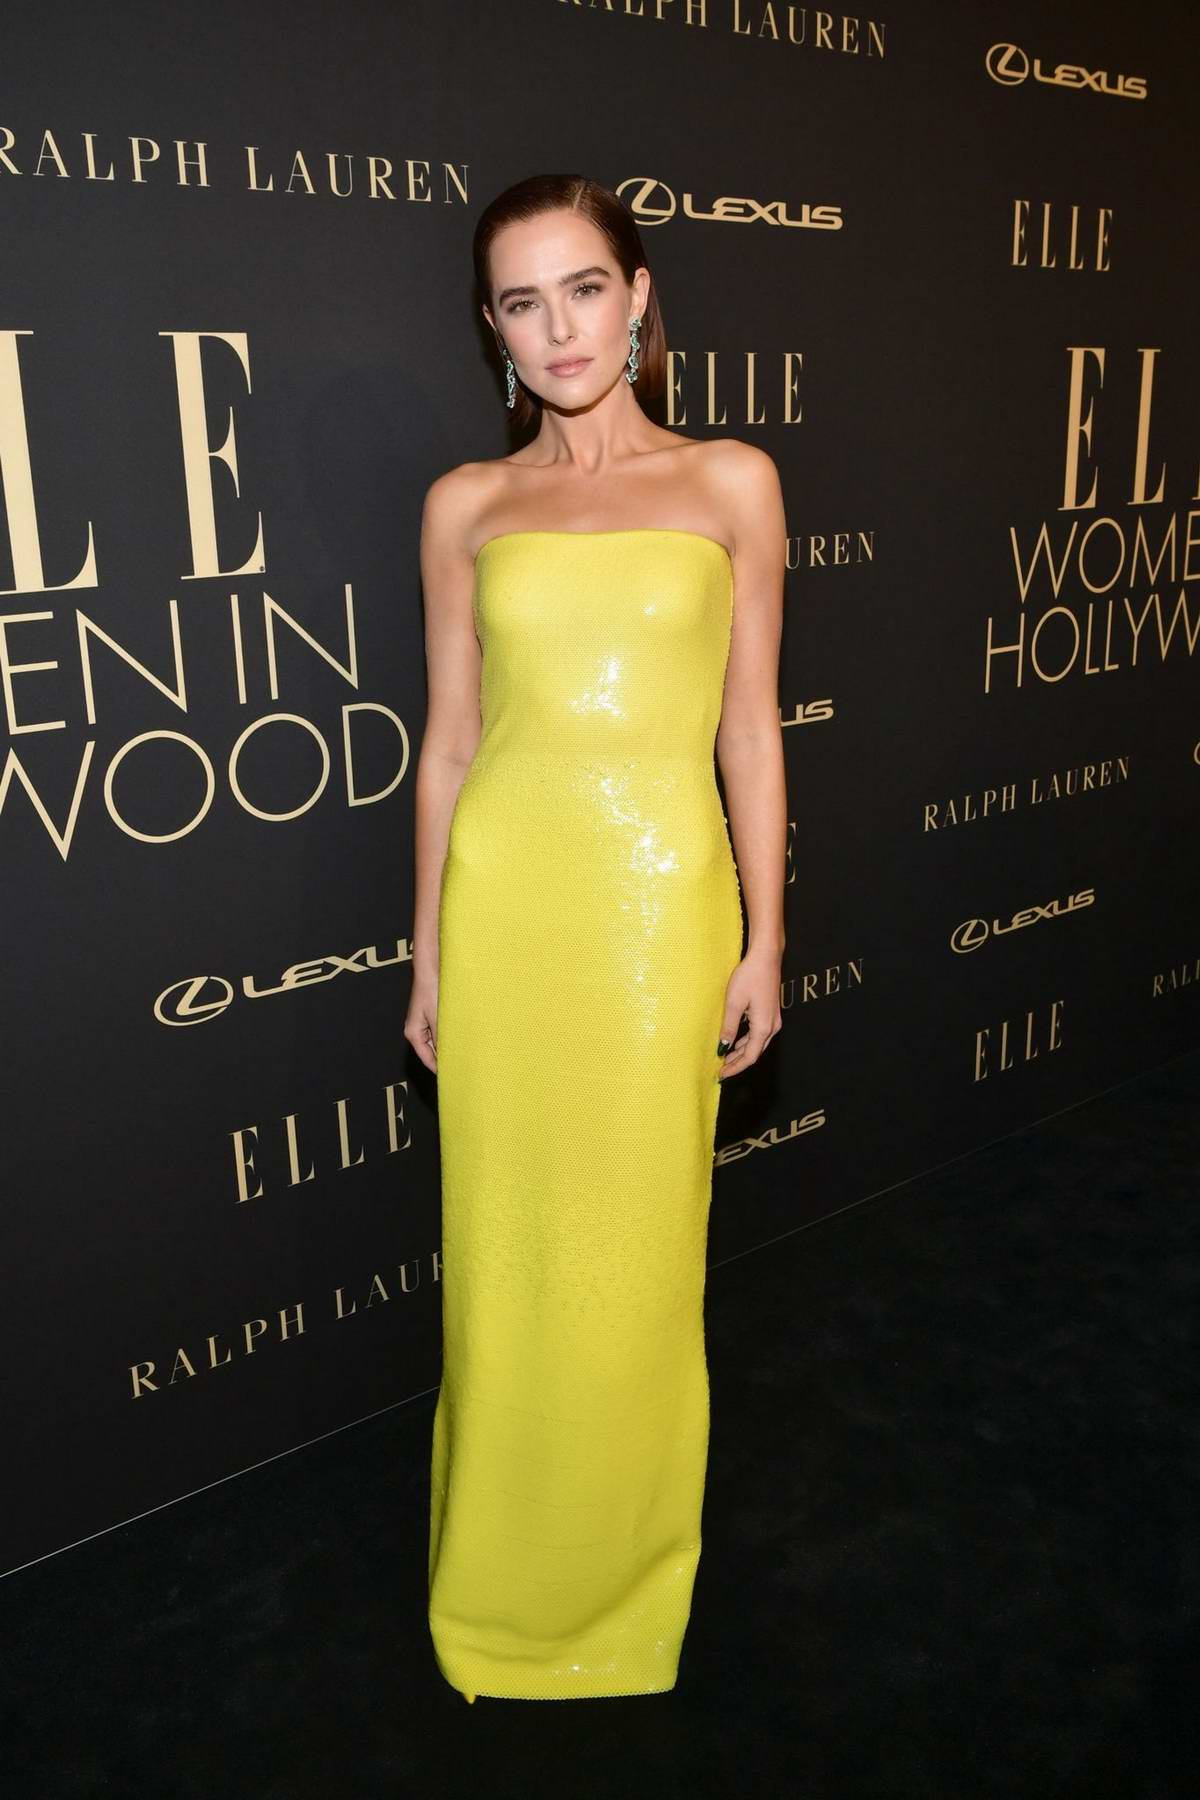 Zoey Deutch attends ELLE's 26th Annual Women In Hollywood Celebration at The Four Seasons Hotel in Beverly Hills, California